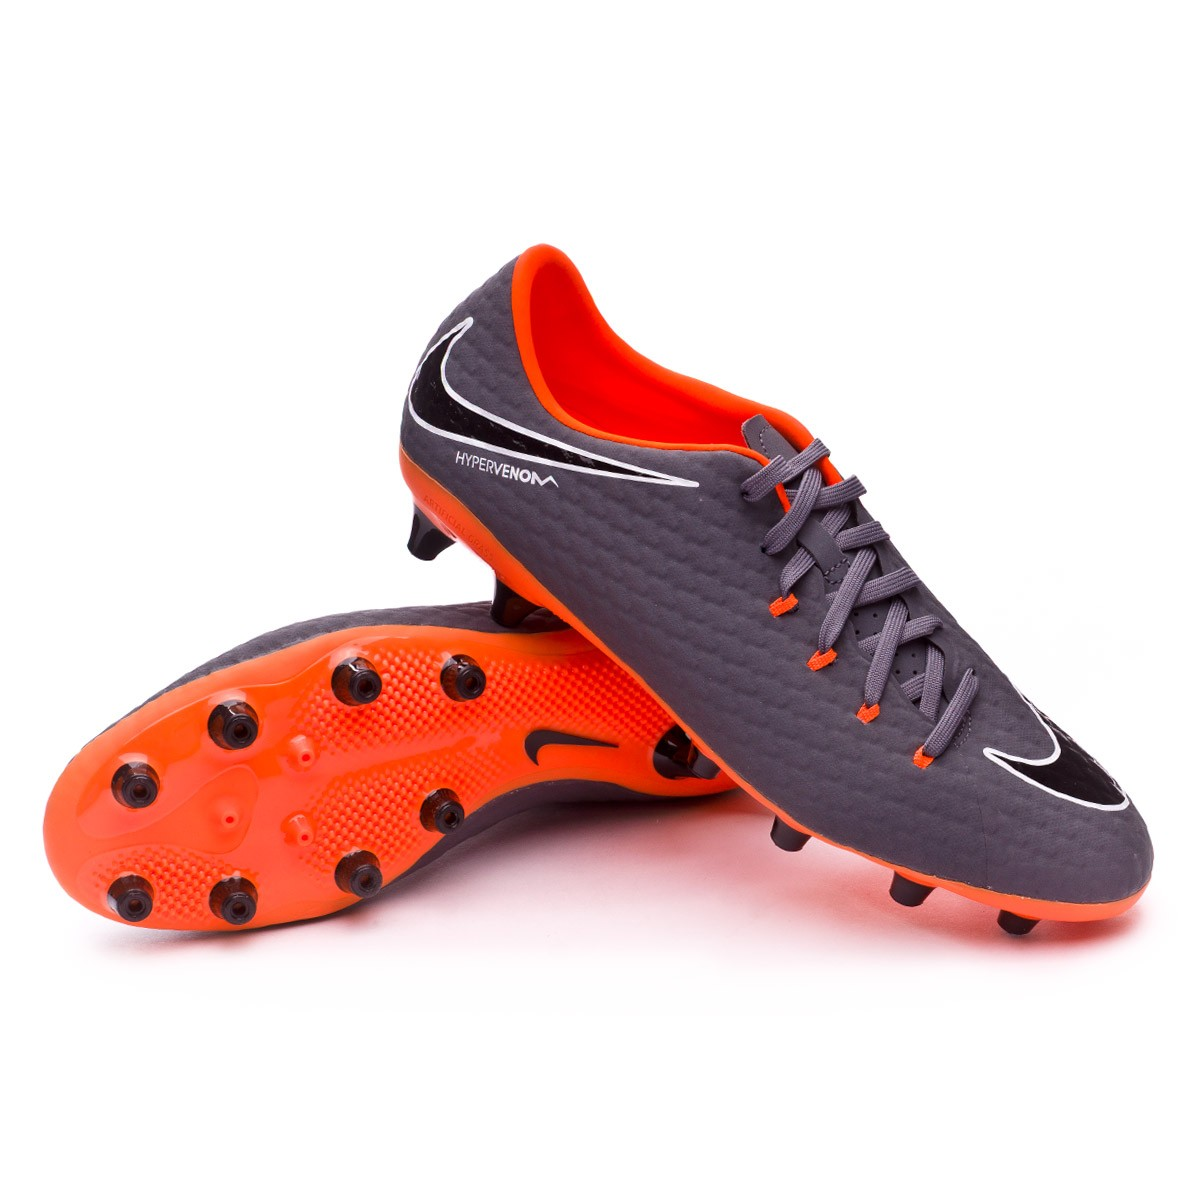 a554eb20a408b Chuteira Nike Hypervenom Phantom III Academy AG-Pro Dark grey-Total  orange-White - Loja de futebol Fútbol Emotion